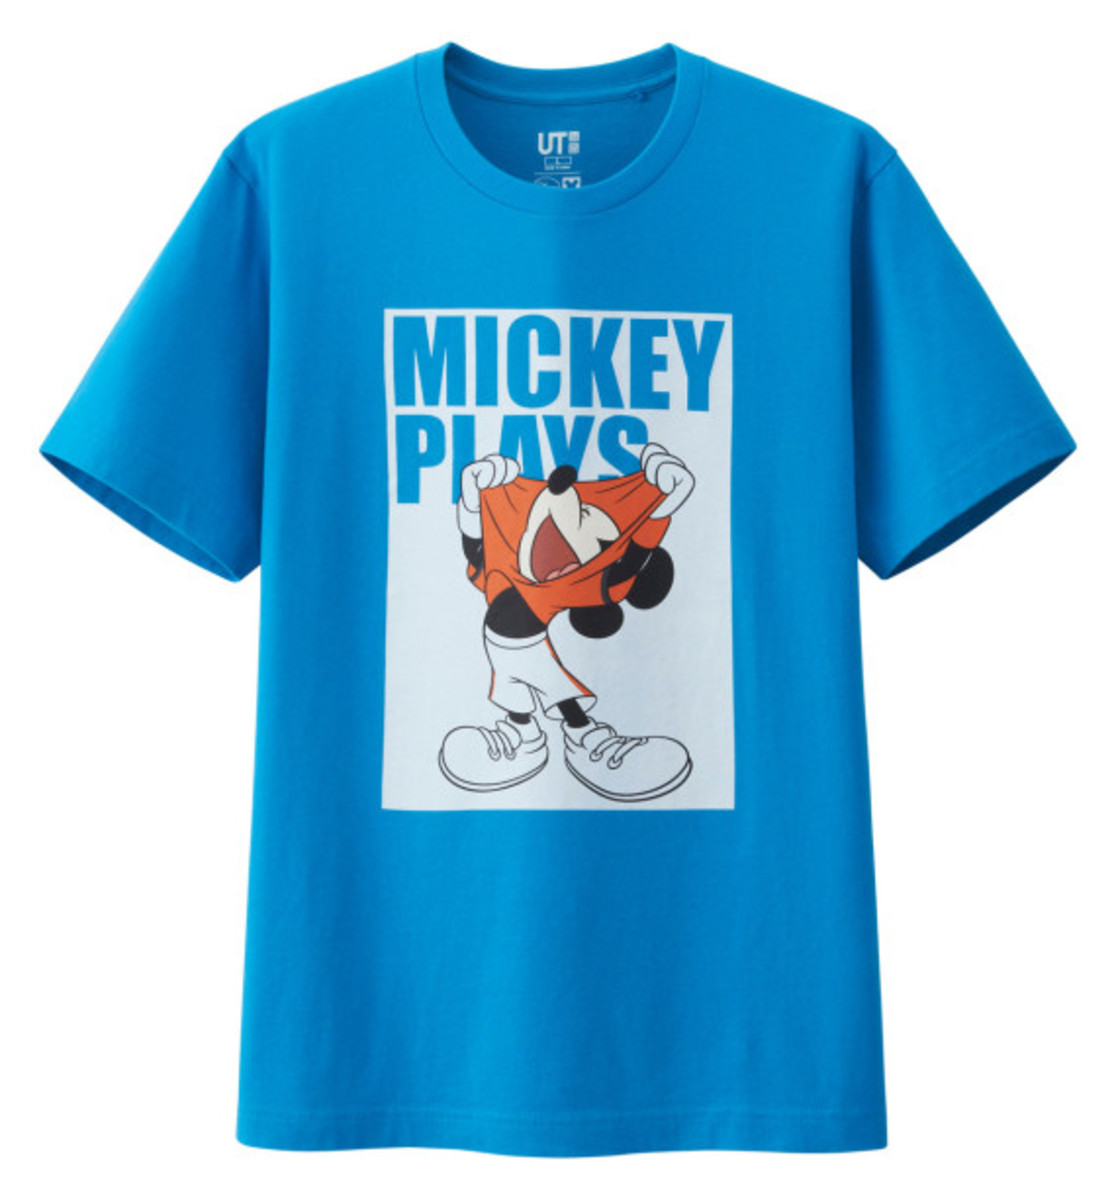 disney-uniqlo-mickey-plays-t-shirt-collection-08